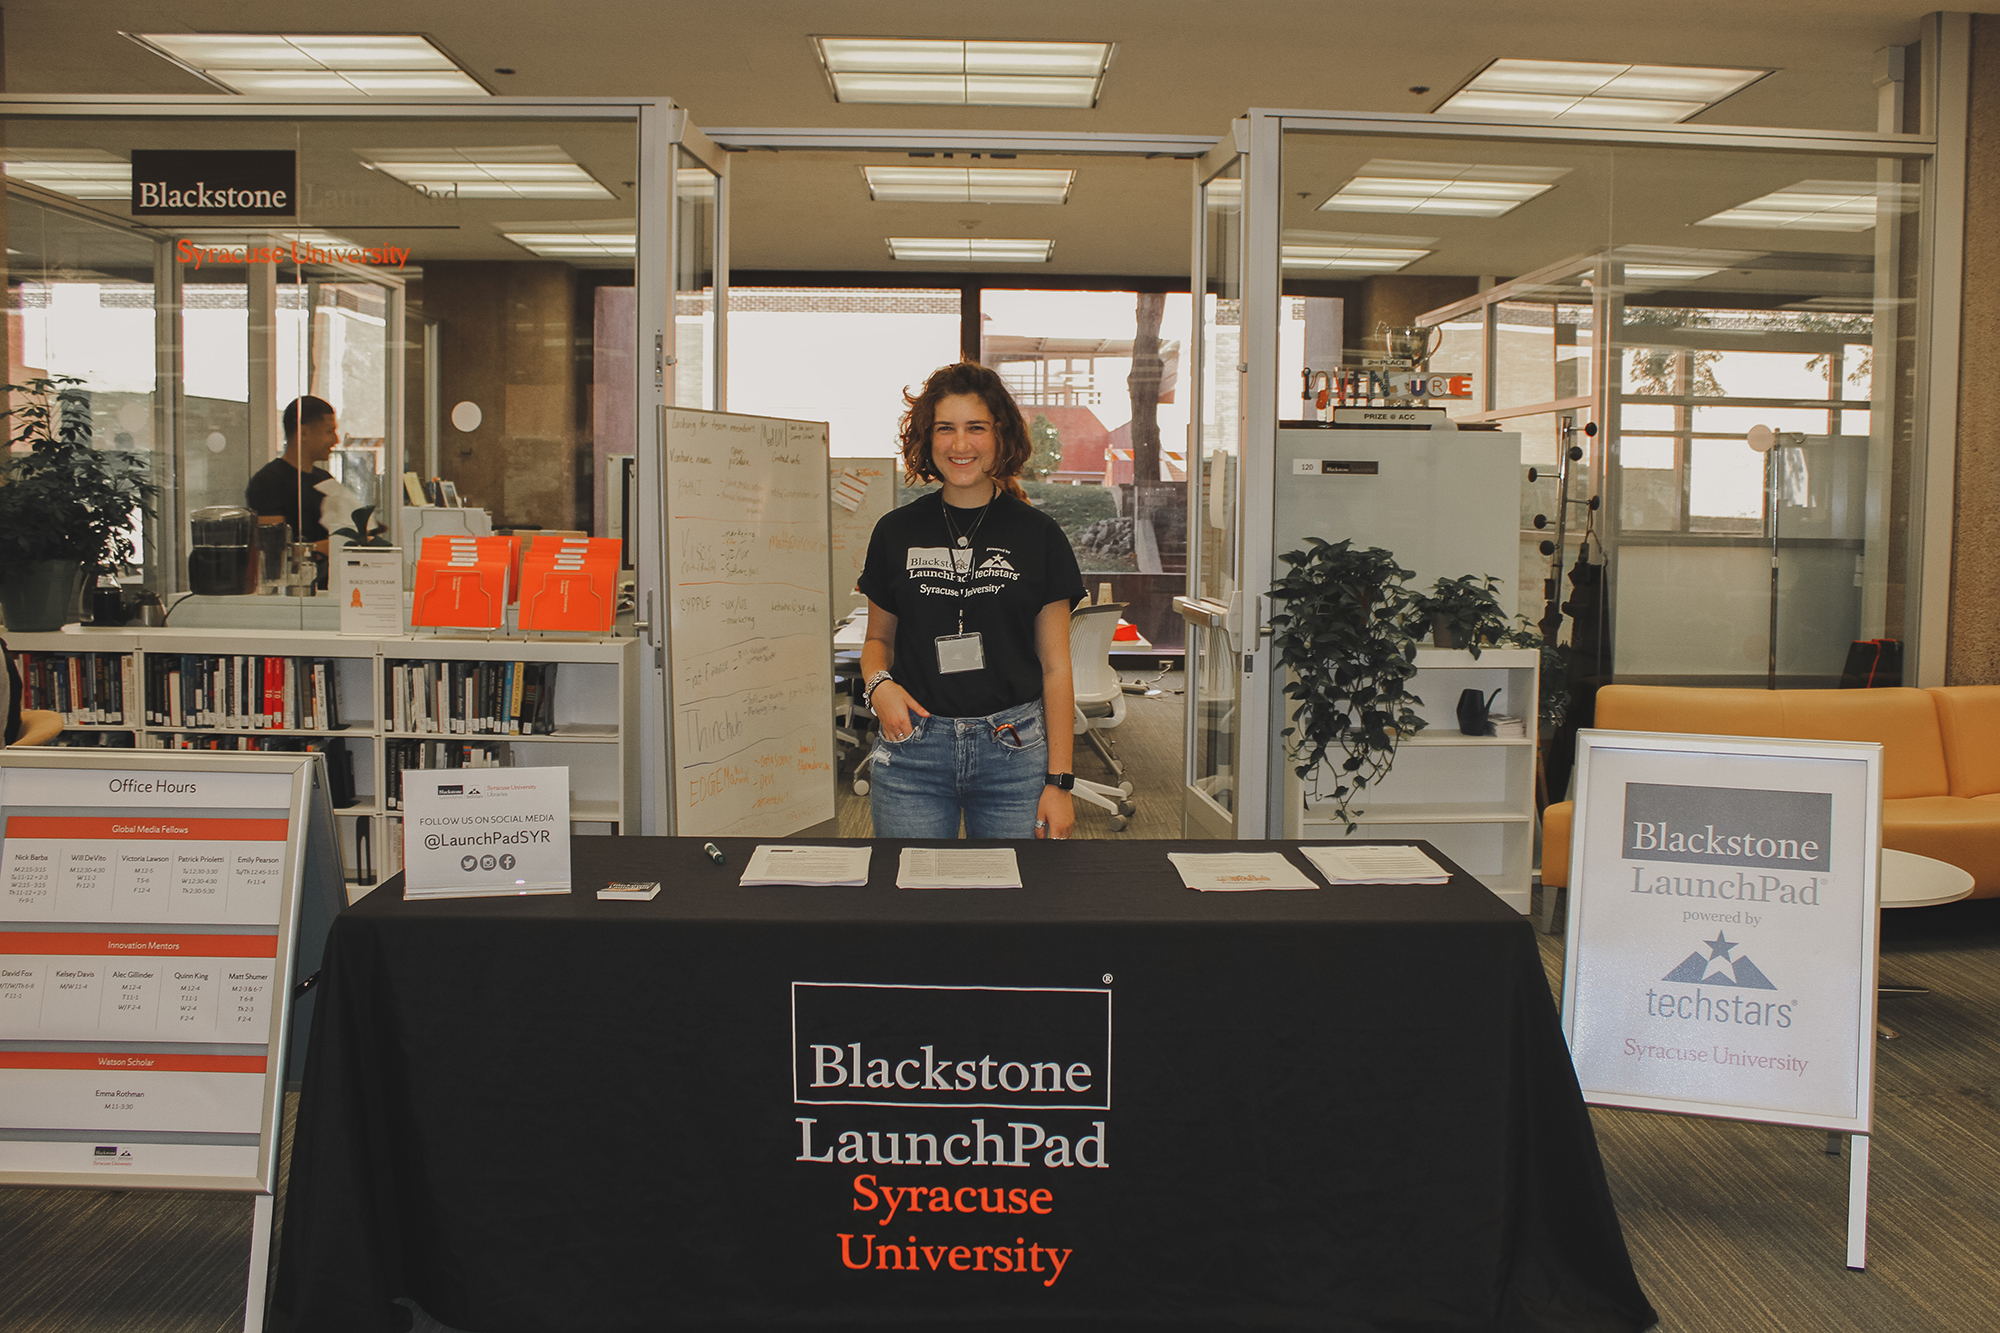 Emma Rothman welcomes students to the Syracuse University Blackstone LaunchPad powered by Techstars for Startup Weekend, 2019.